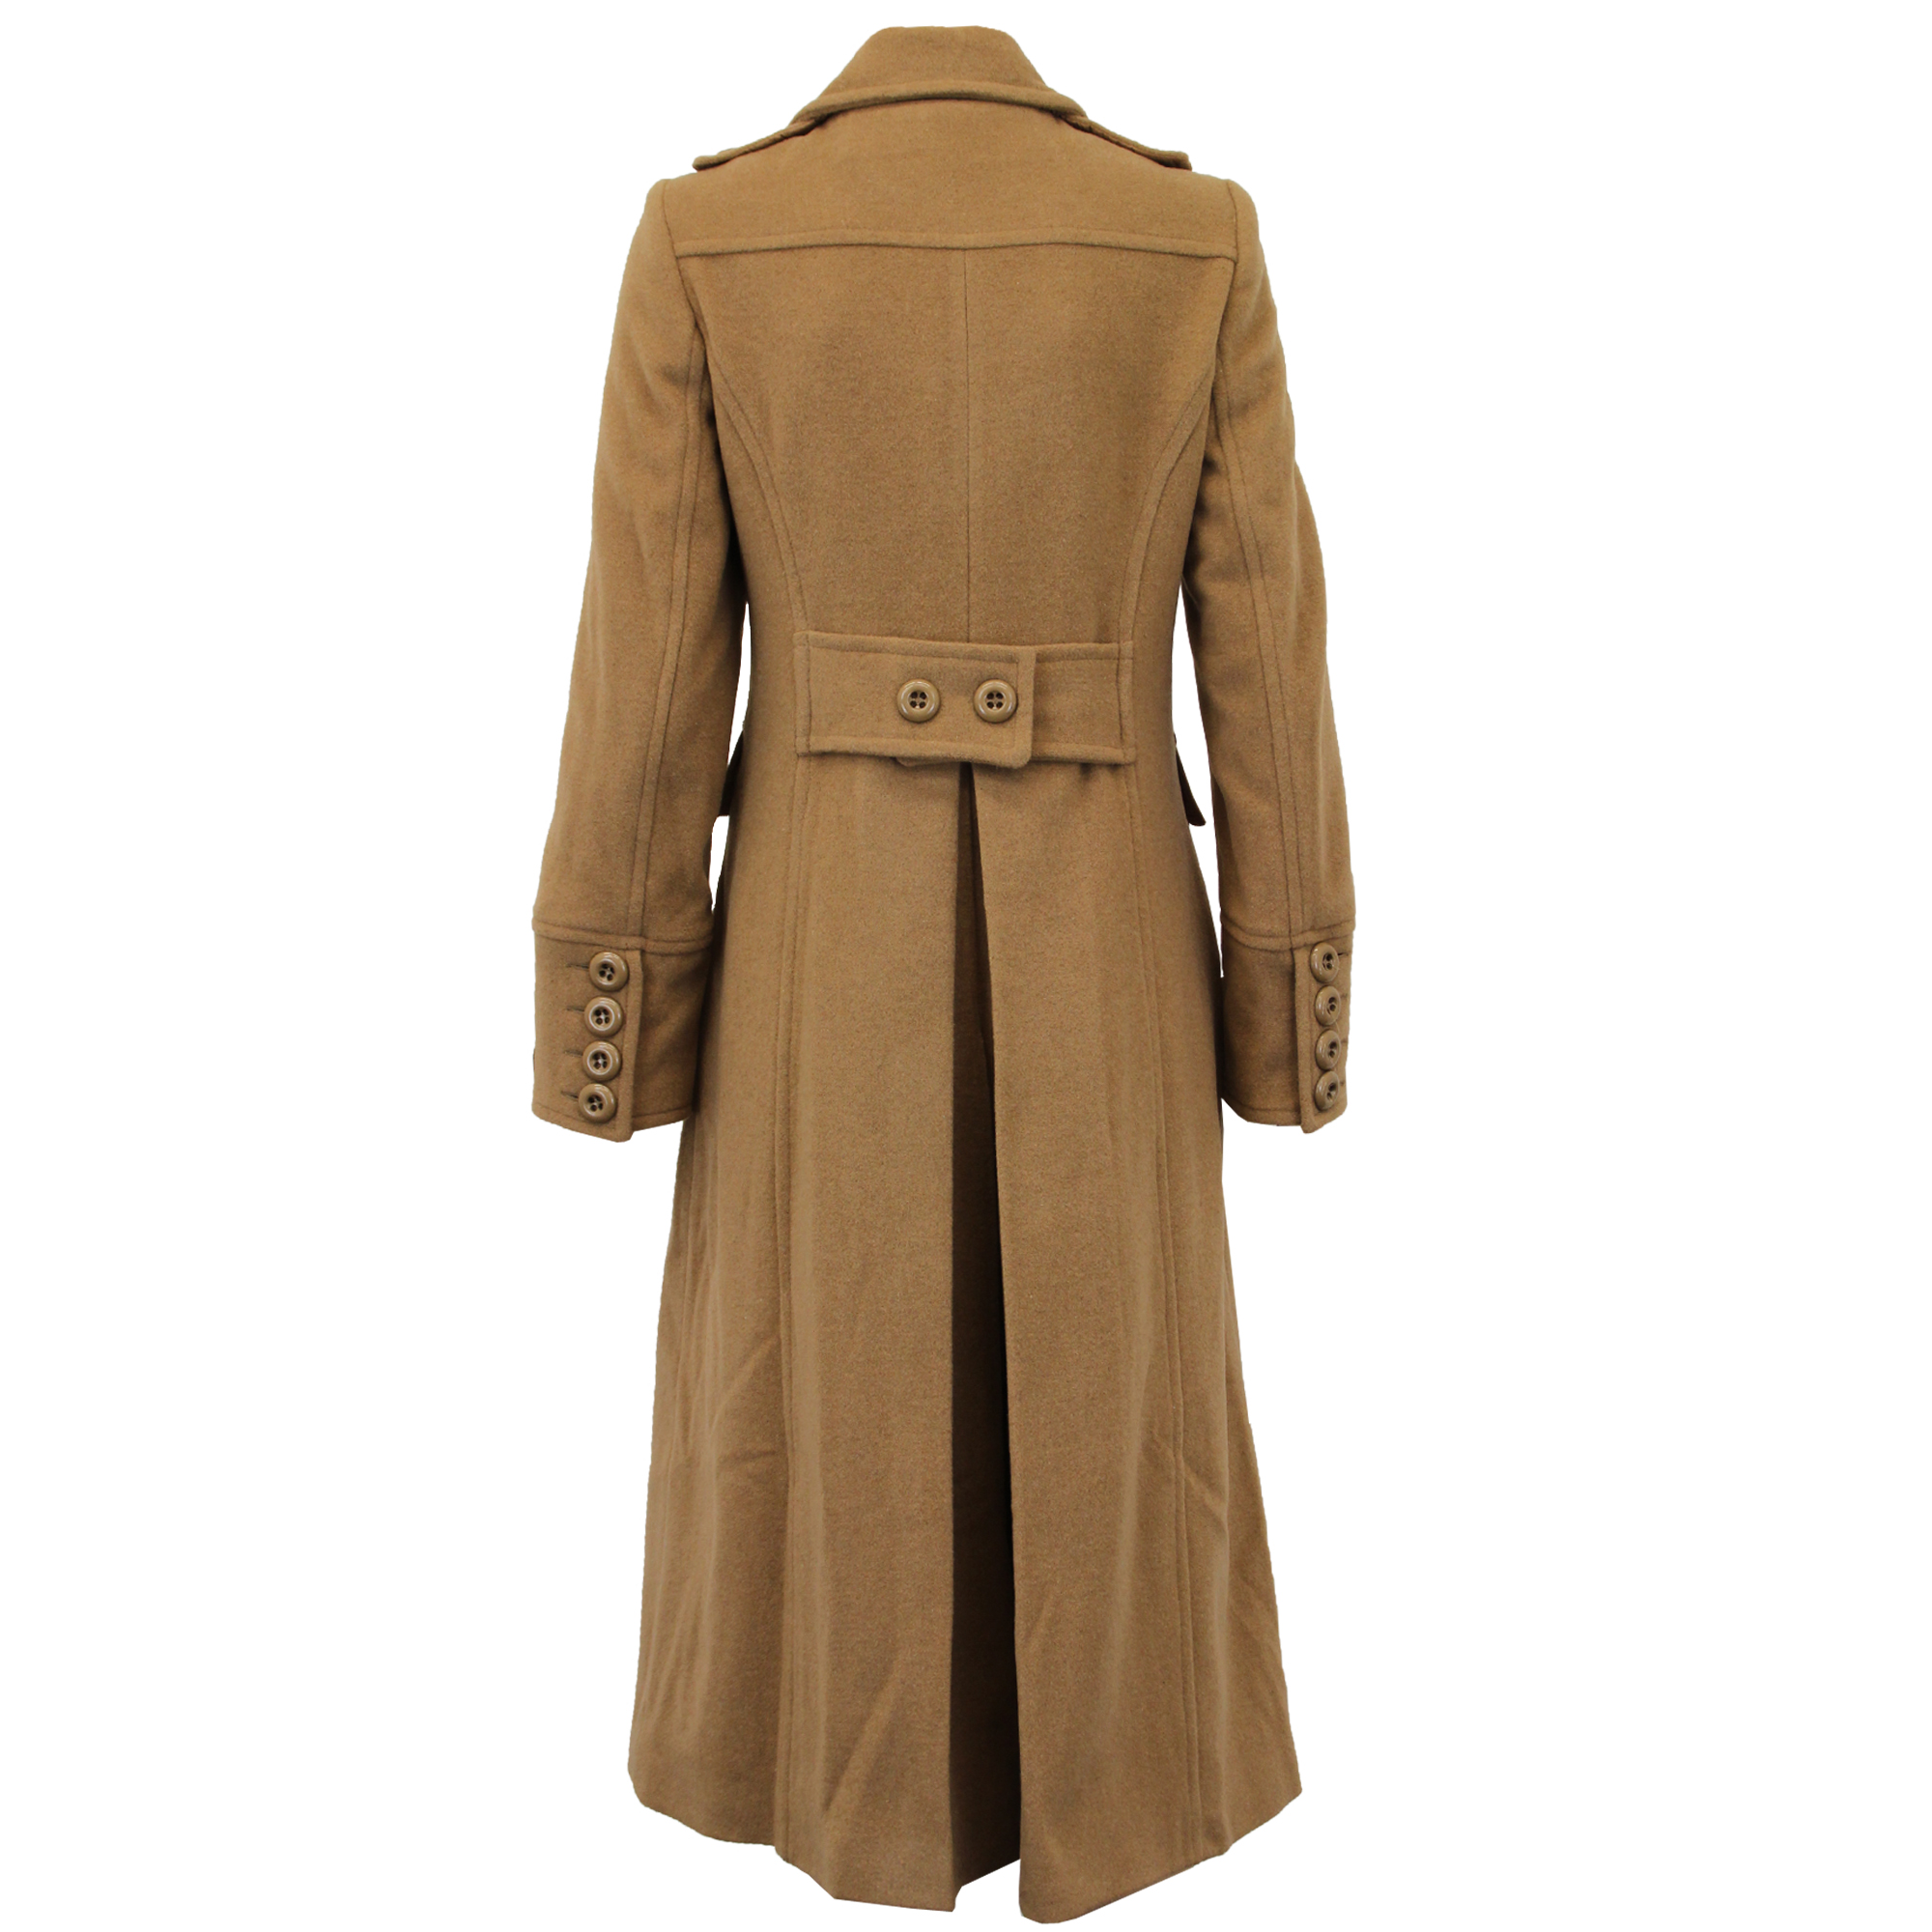 Ladies-Wool-Cashmere-Coat-Women-Jacket-Outerwear-Trench-Overcoat-Winter-Lined thumbnail 20